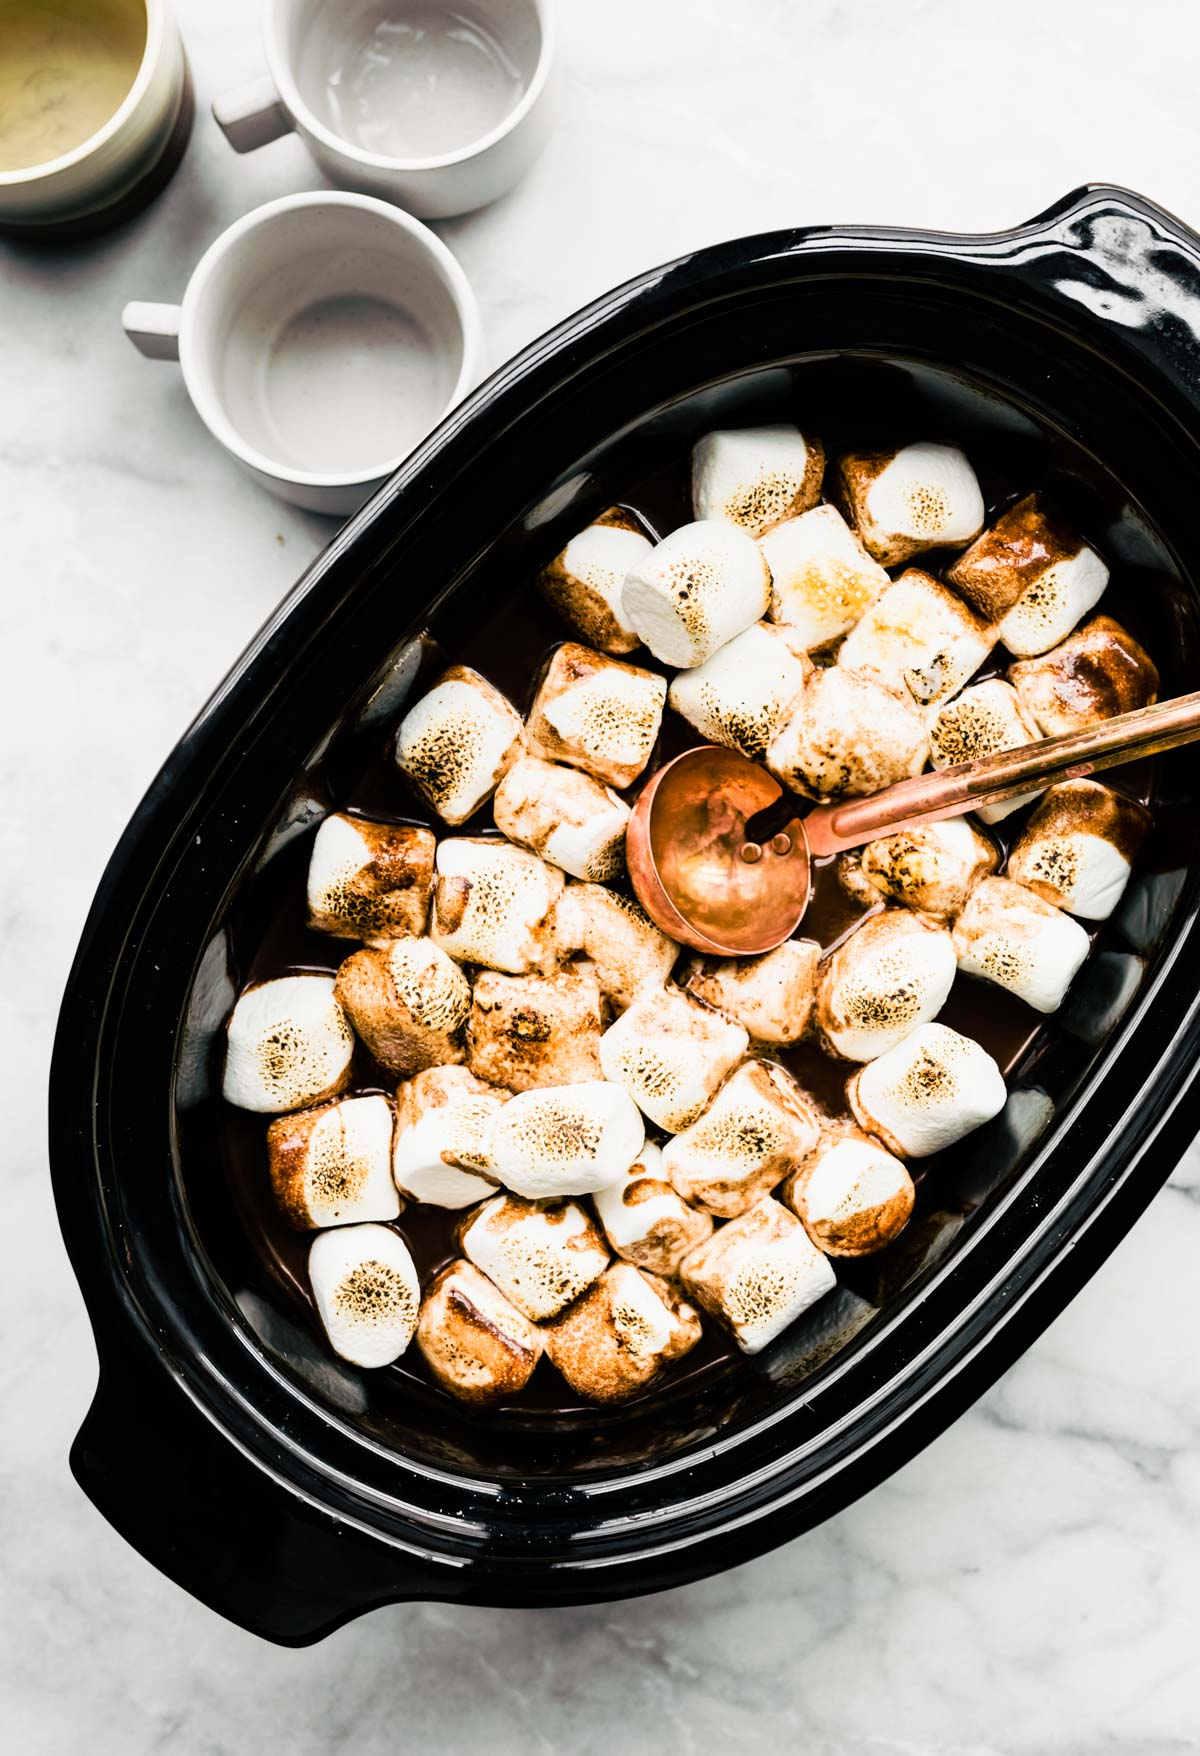 toasted marshmallows and a small ladle rest on top of a slow cooker full of spiked hot chocolate